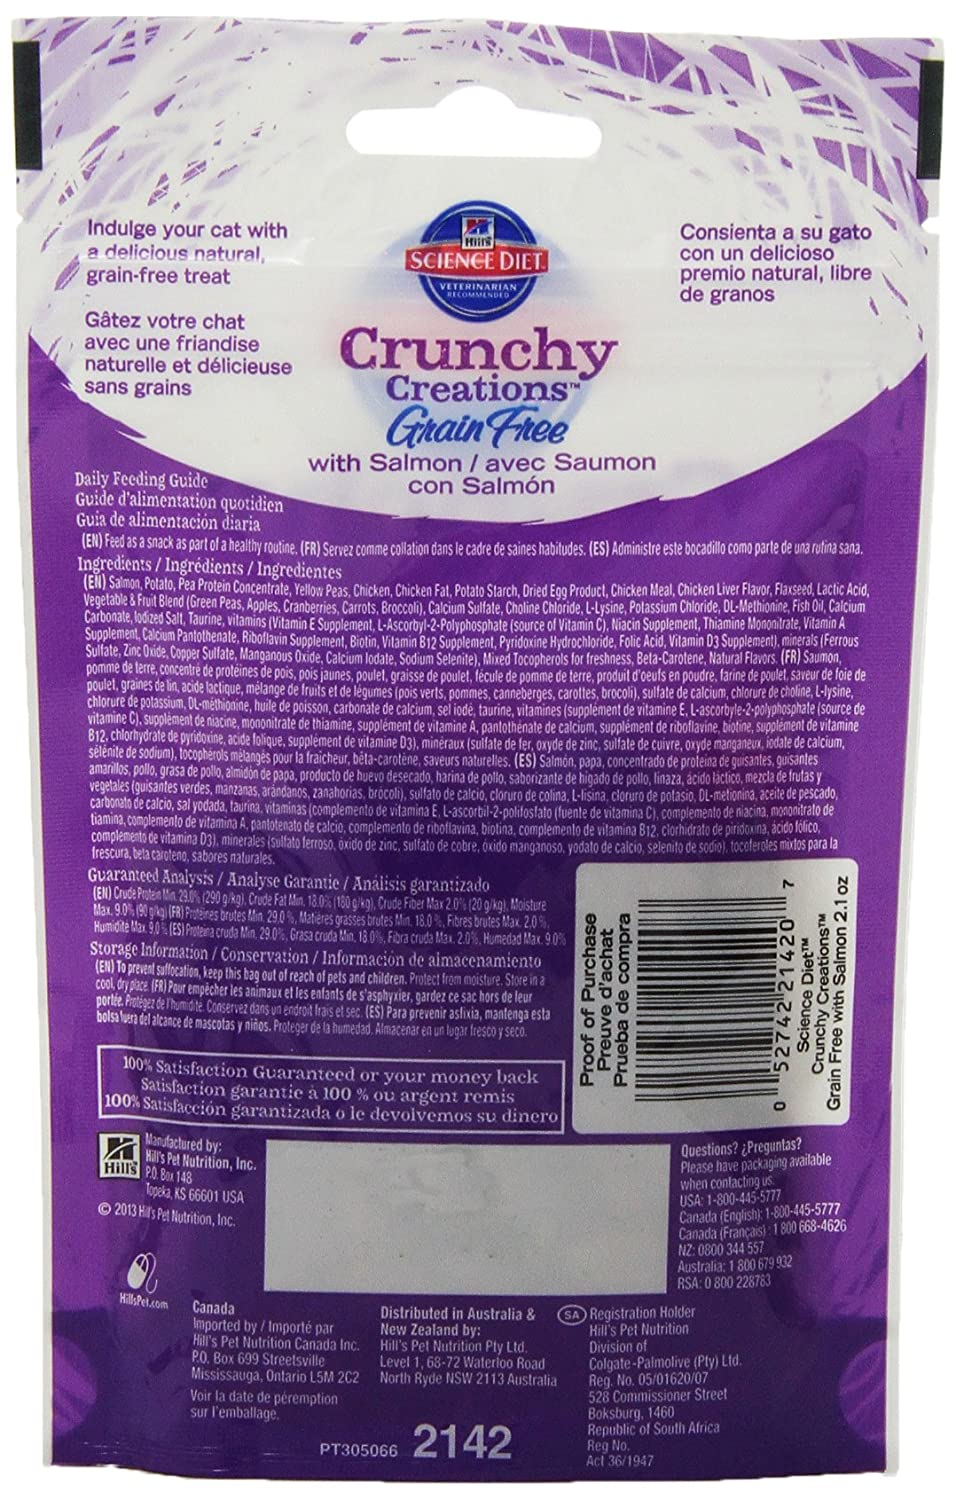 Amazon.com : HillS Science Diet Crunchy Creations Grain Free With Salmon Treats For Cats, 2.1-Ounce : Pet Snack Treats : Pet Supplies